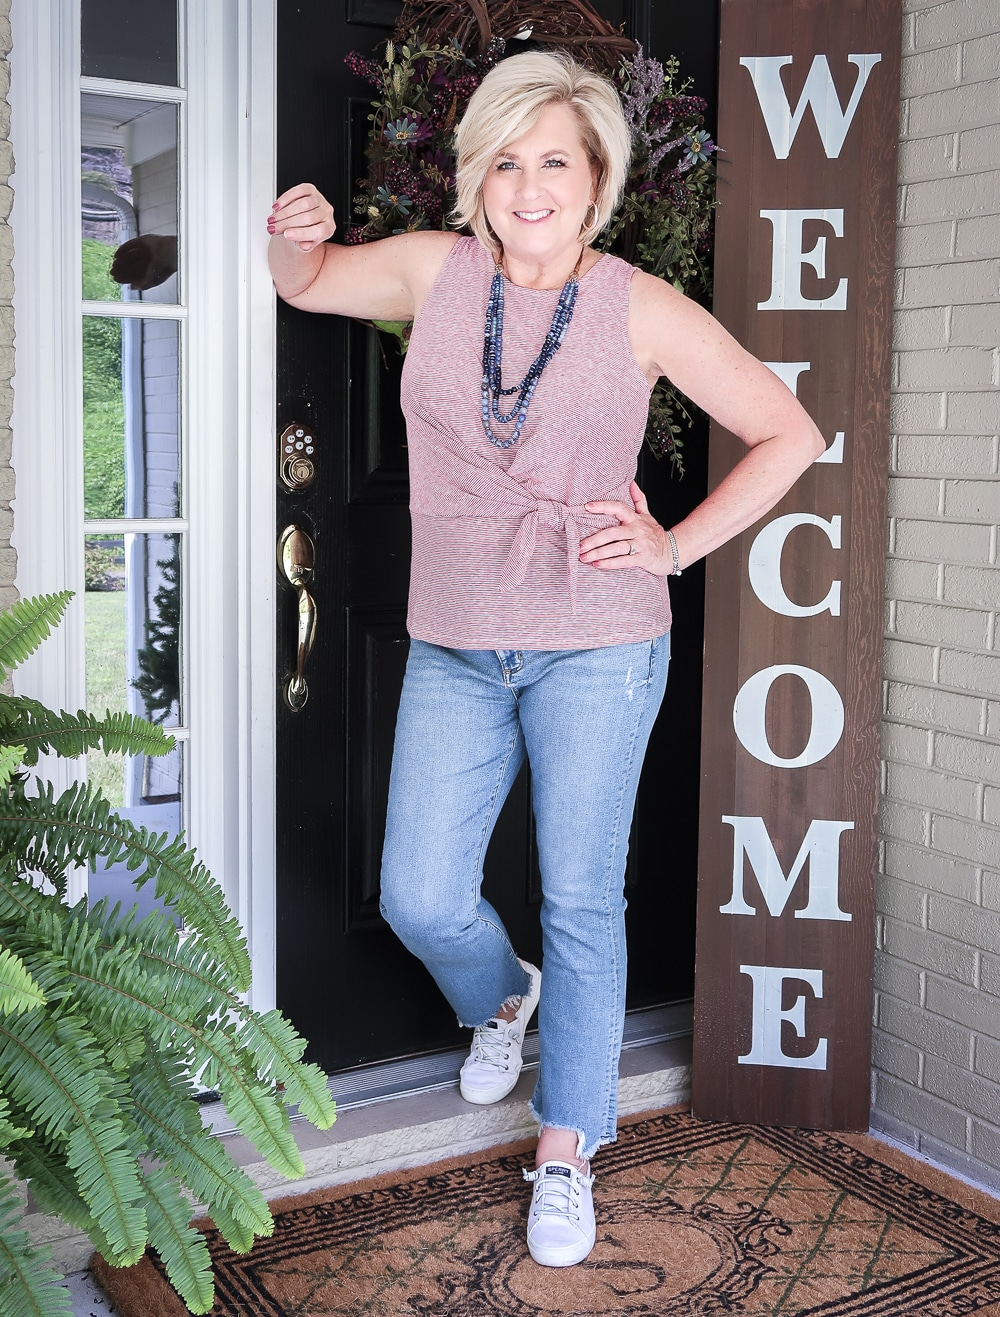 Fashion Blogger 50 Is Not Old is ready for celebrating Labor Day in her red white and blue top twist top, distressed jeans, and Sperry sneakers